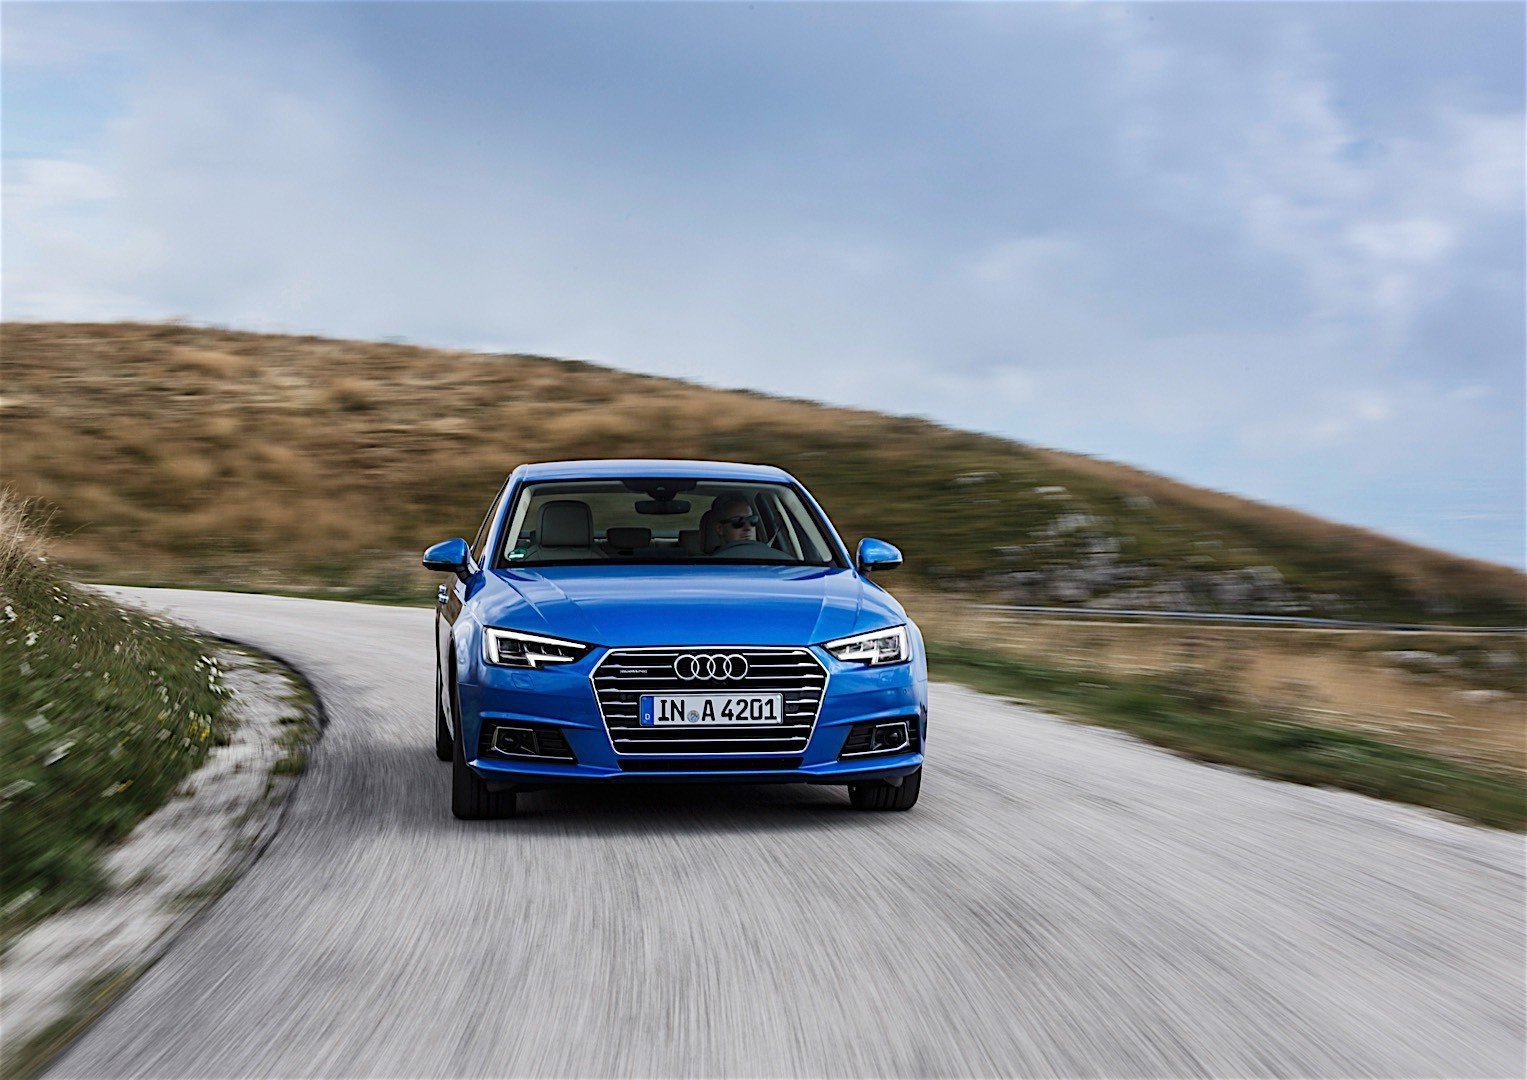 Audi to adopt a new approach to design